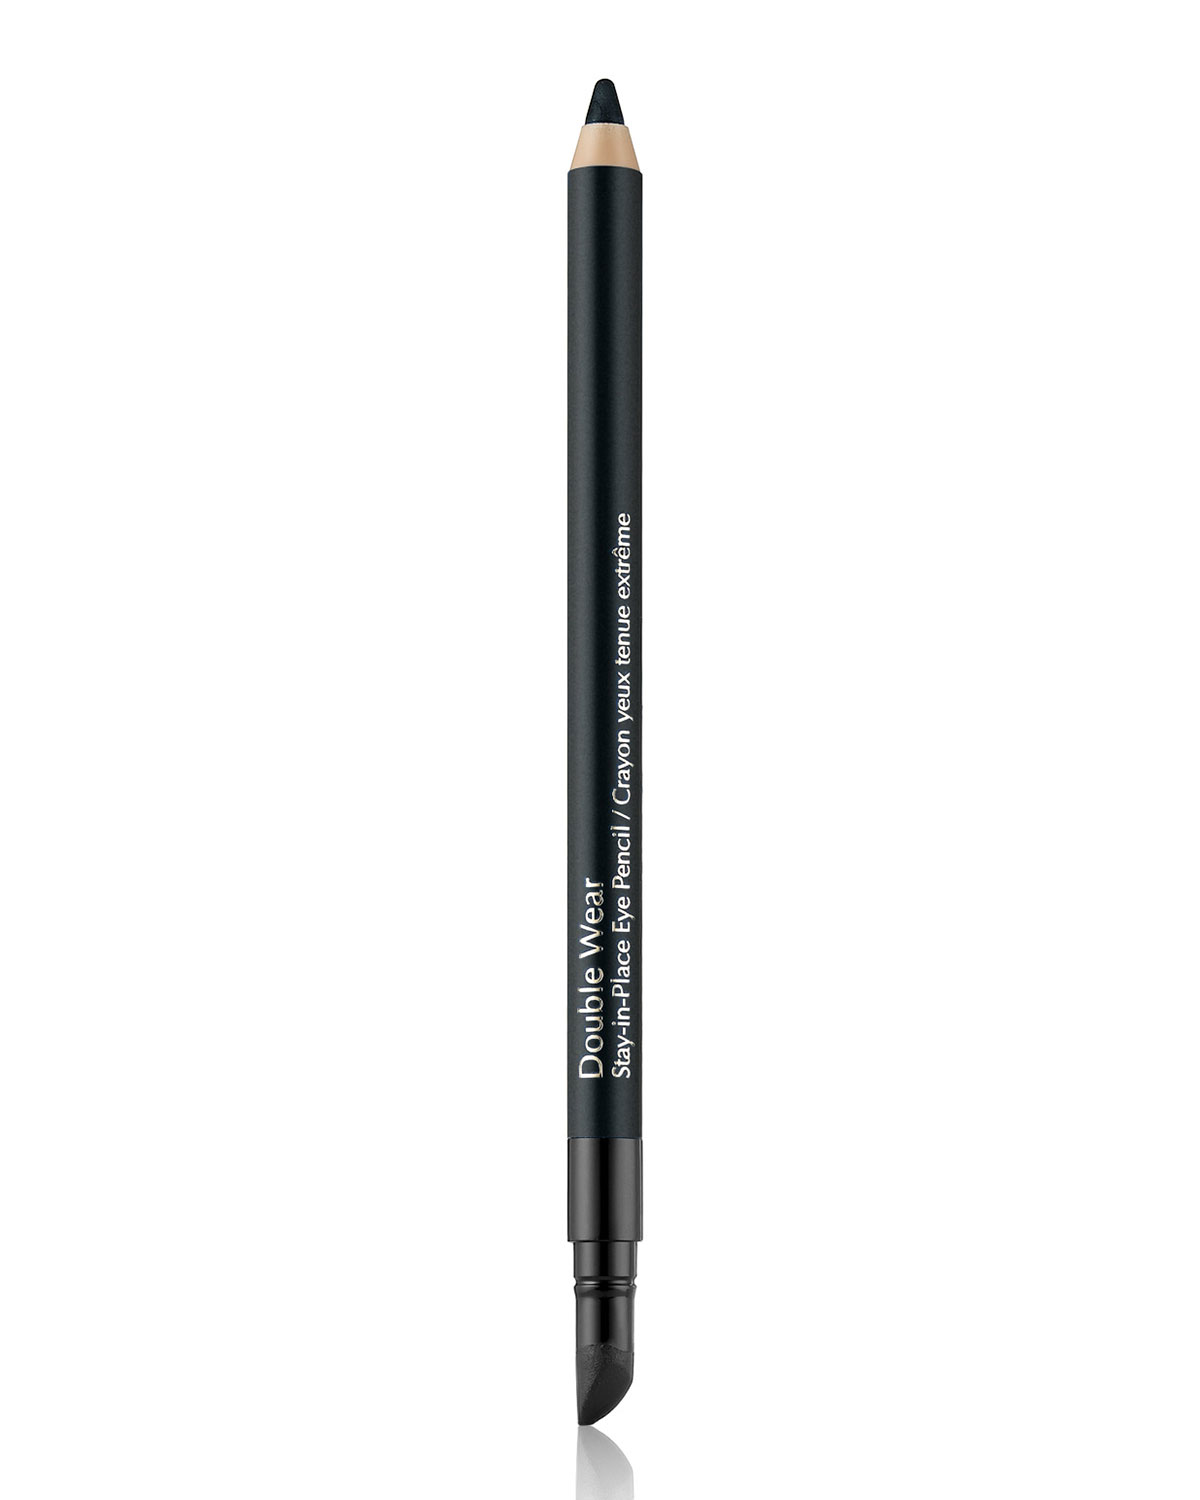 Double Wear Stay-In-Place Eye Pencil 09 Electric Cobalt 0.04 Oz / 1.2 G in Blue